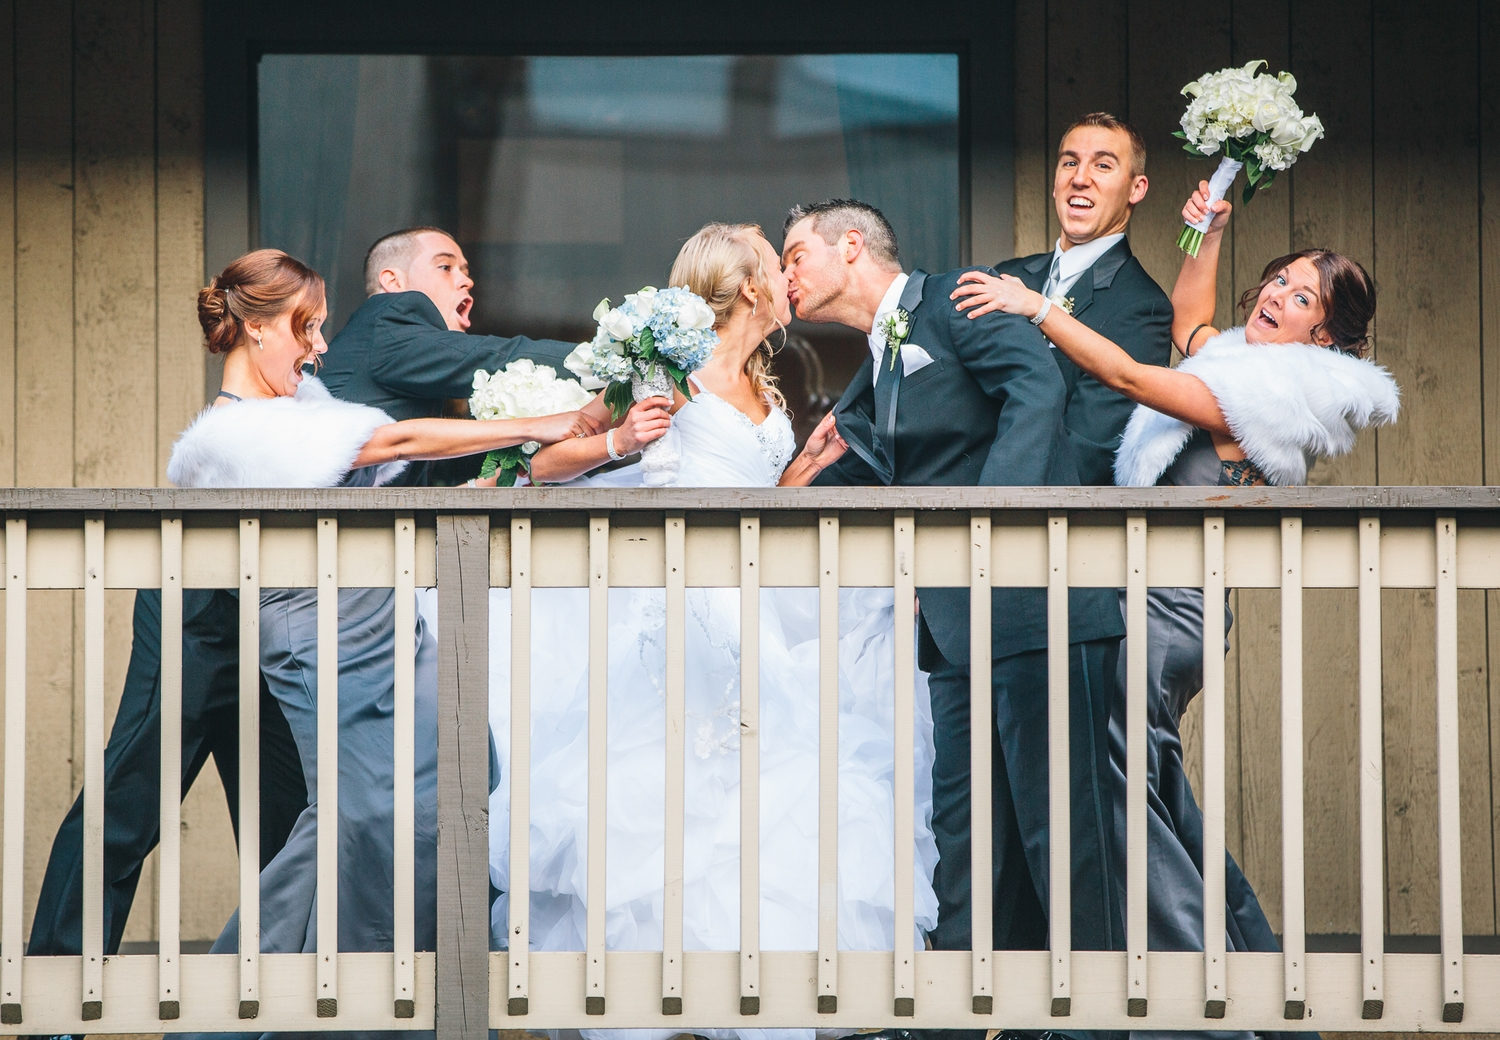 Apparently the bridal party were having second thoughts